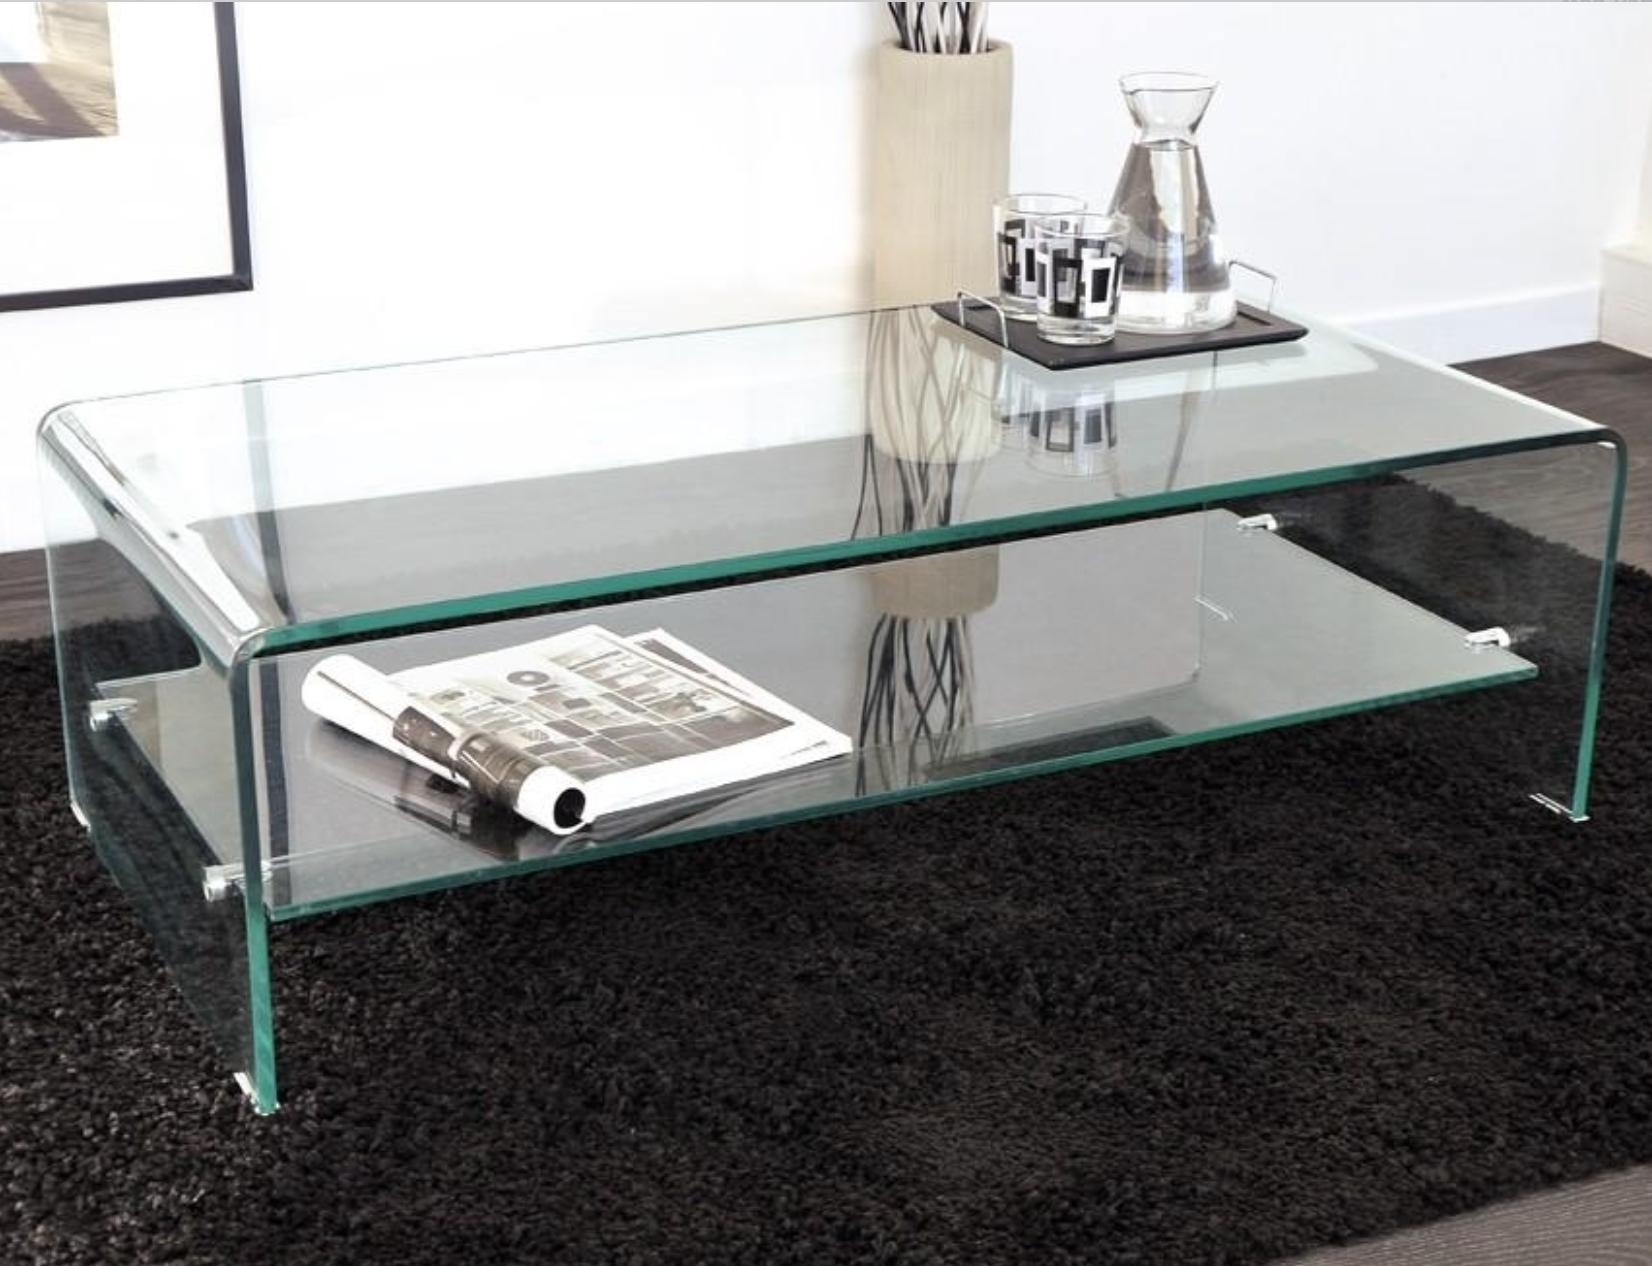 Table basse verre tremp stella - Table en verre rectangulaire ...